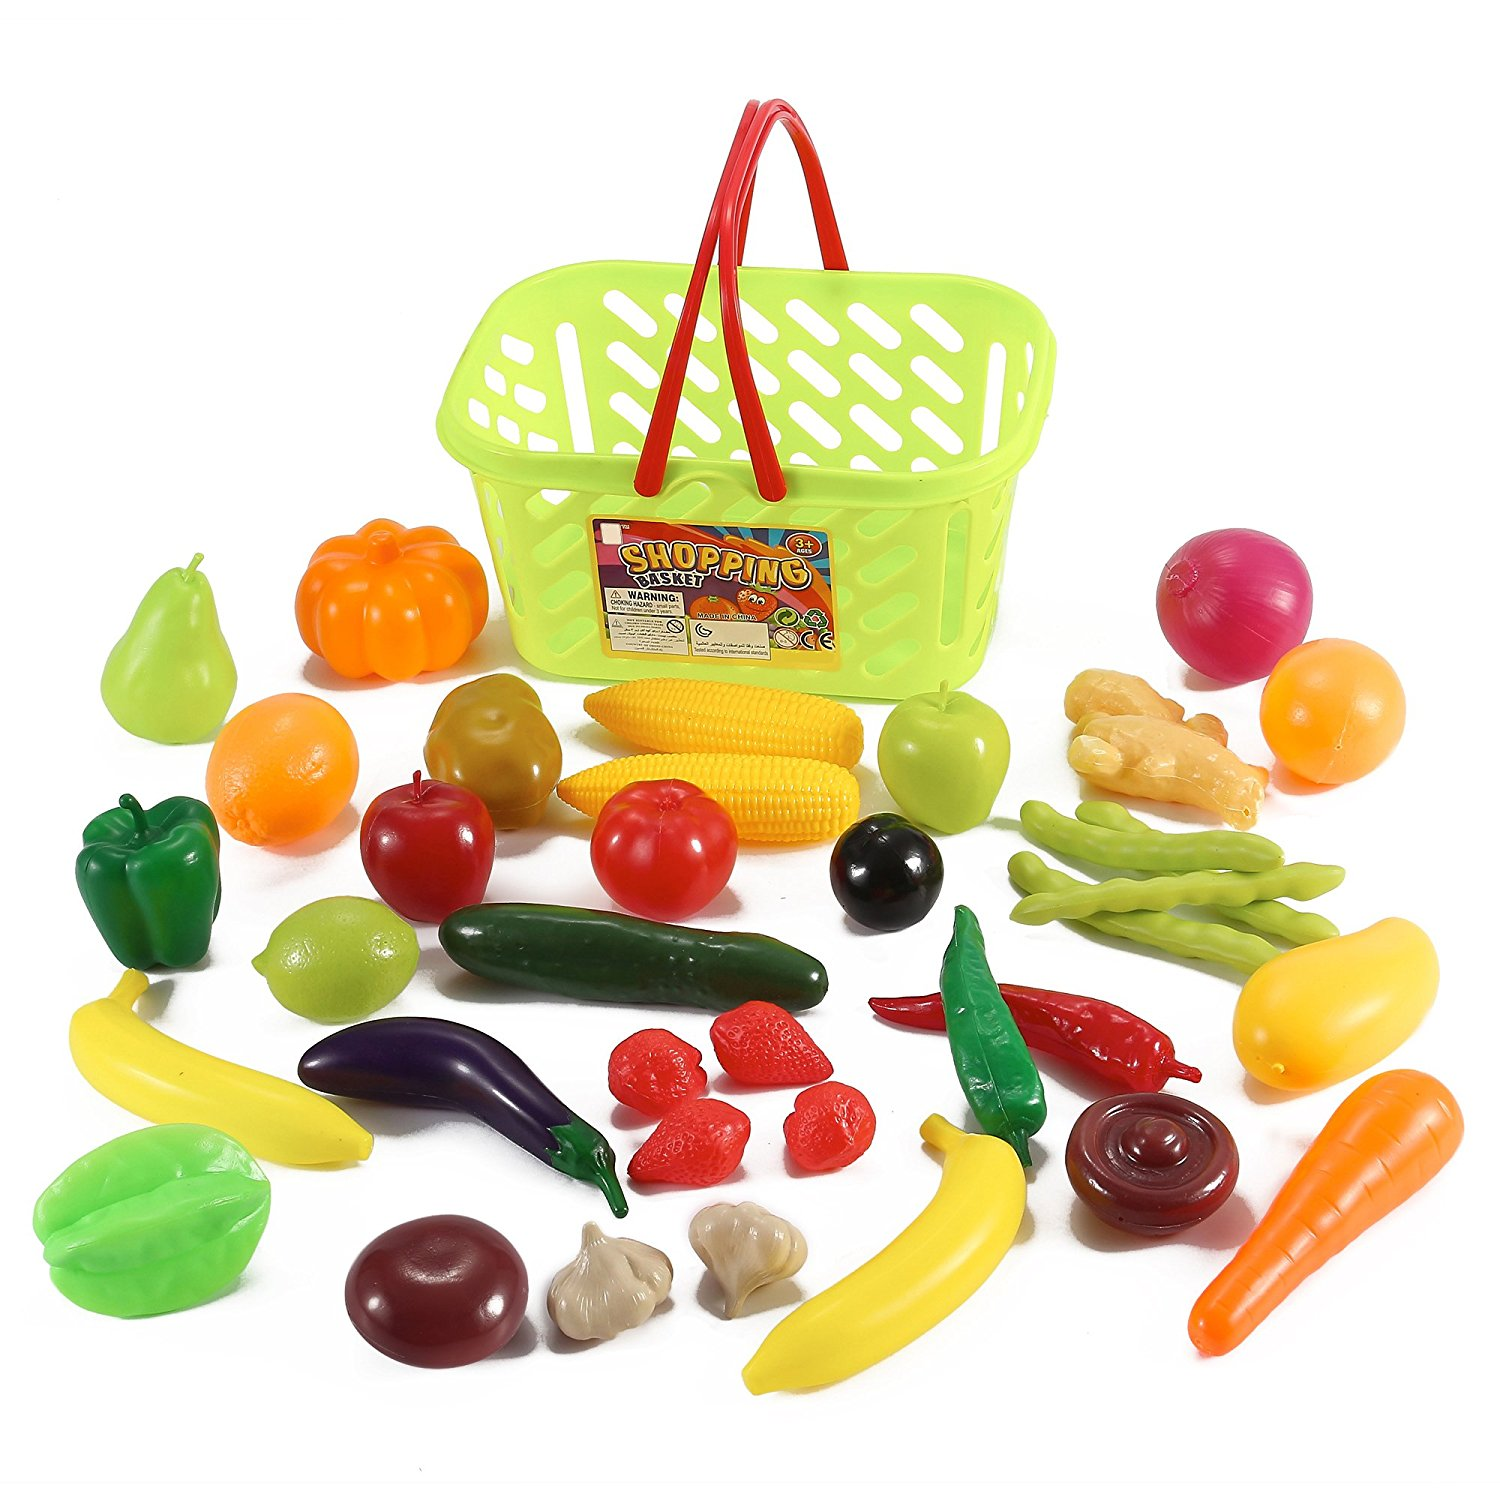 1500x1500 Fruits And Vegetables Shopping Basket Grocery Play